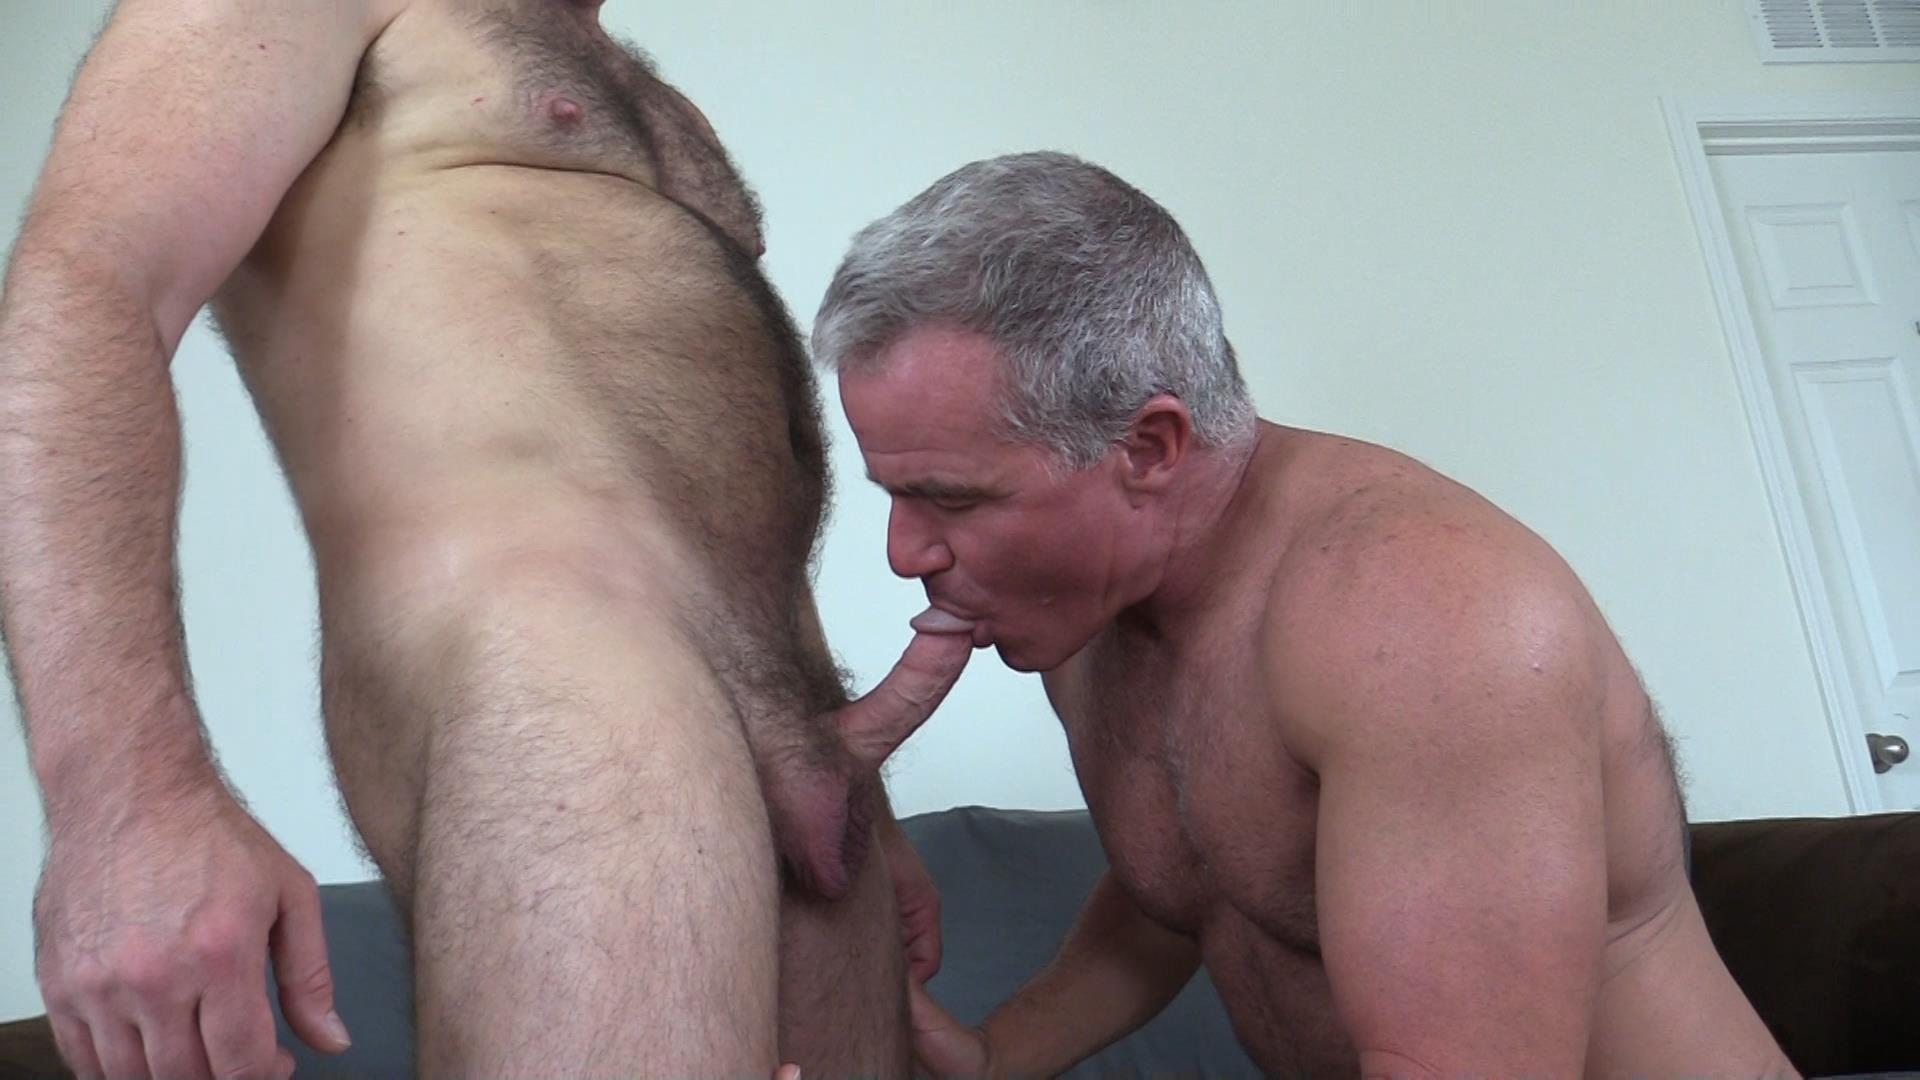 Topher-Phoenix-and-Dale-Savage-Hairy-Daddy-Bears-Gay-bareback-sex-video-02 Topher Phoenix Breeds Hairy Muscle Daddy Dale Savage